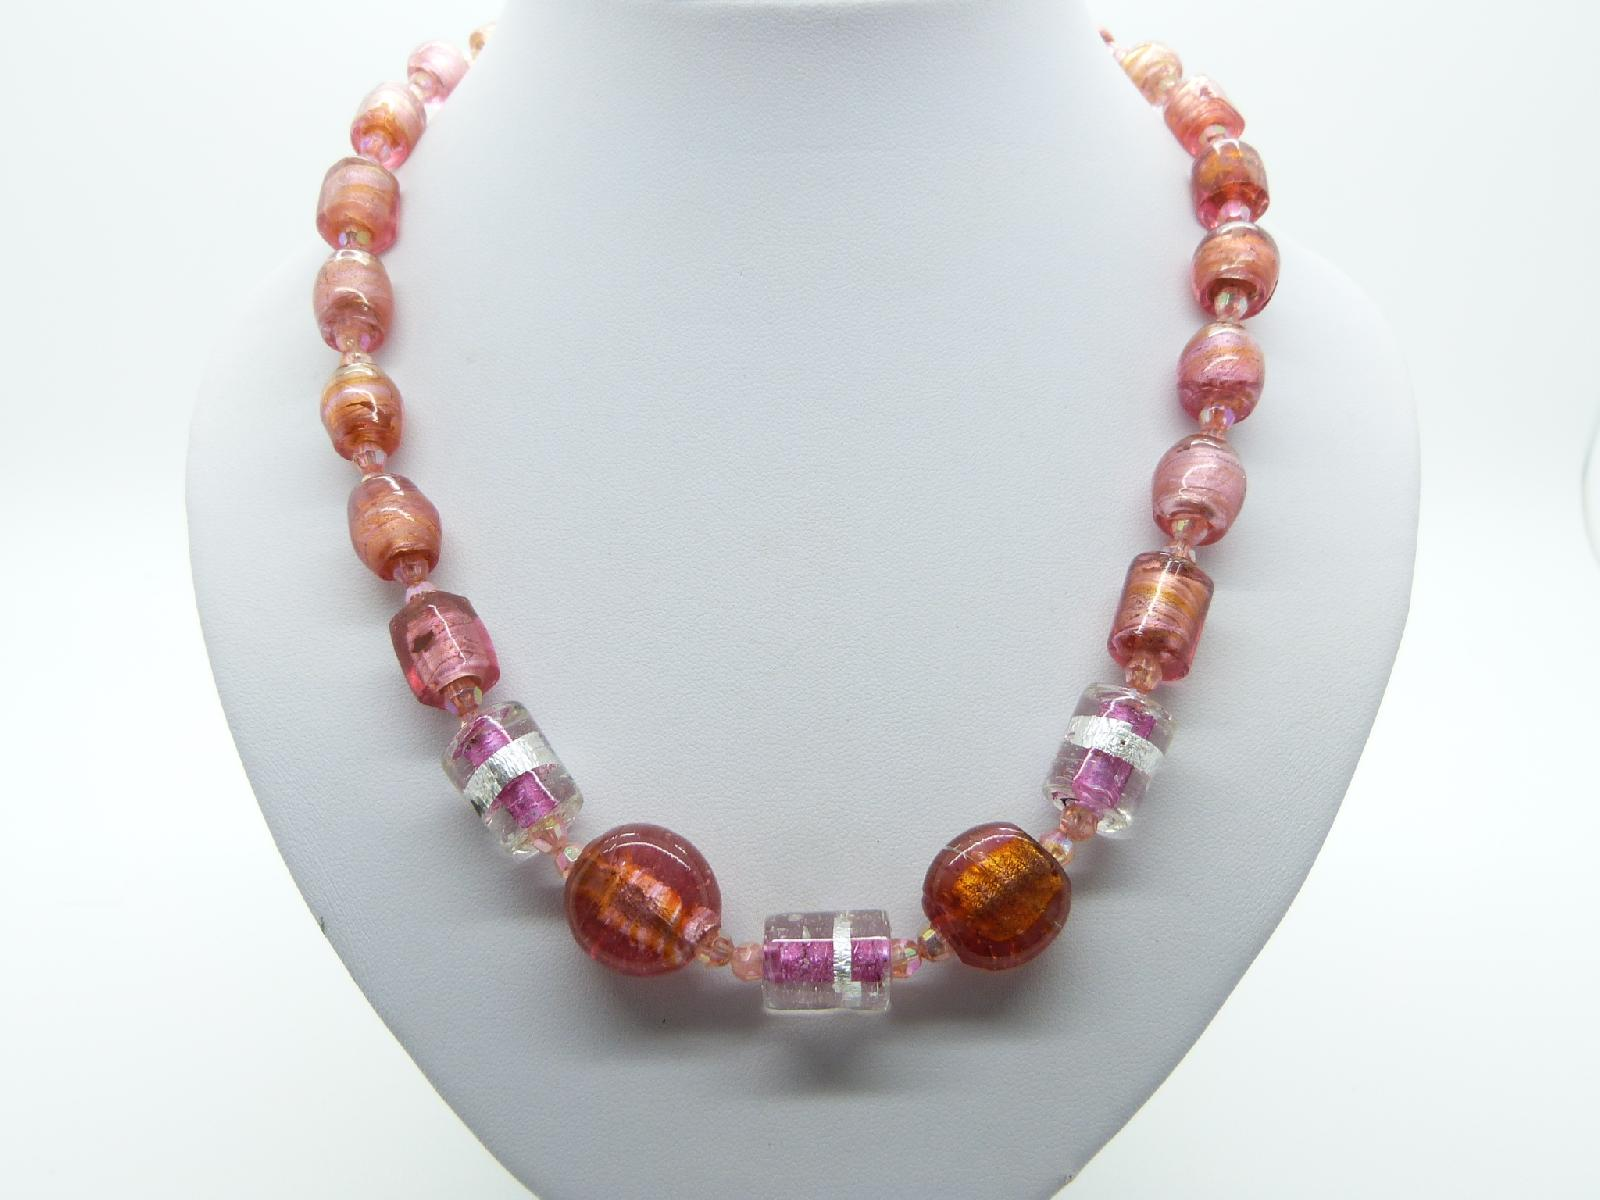 Vintage Inspired Pink and Orange Murano Glass Bead Necklace One Off Piece!